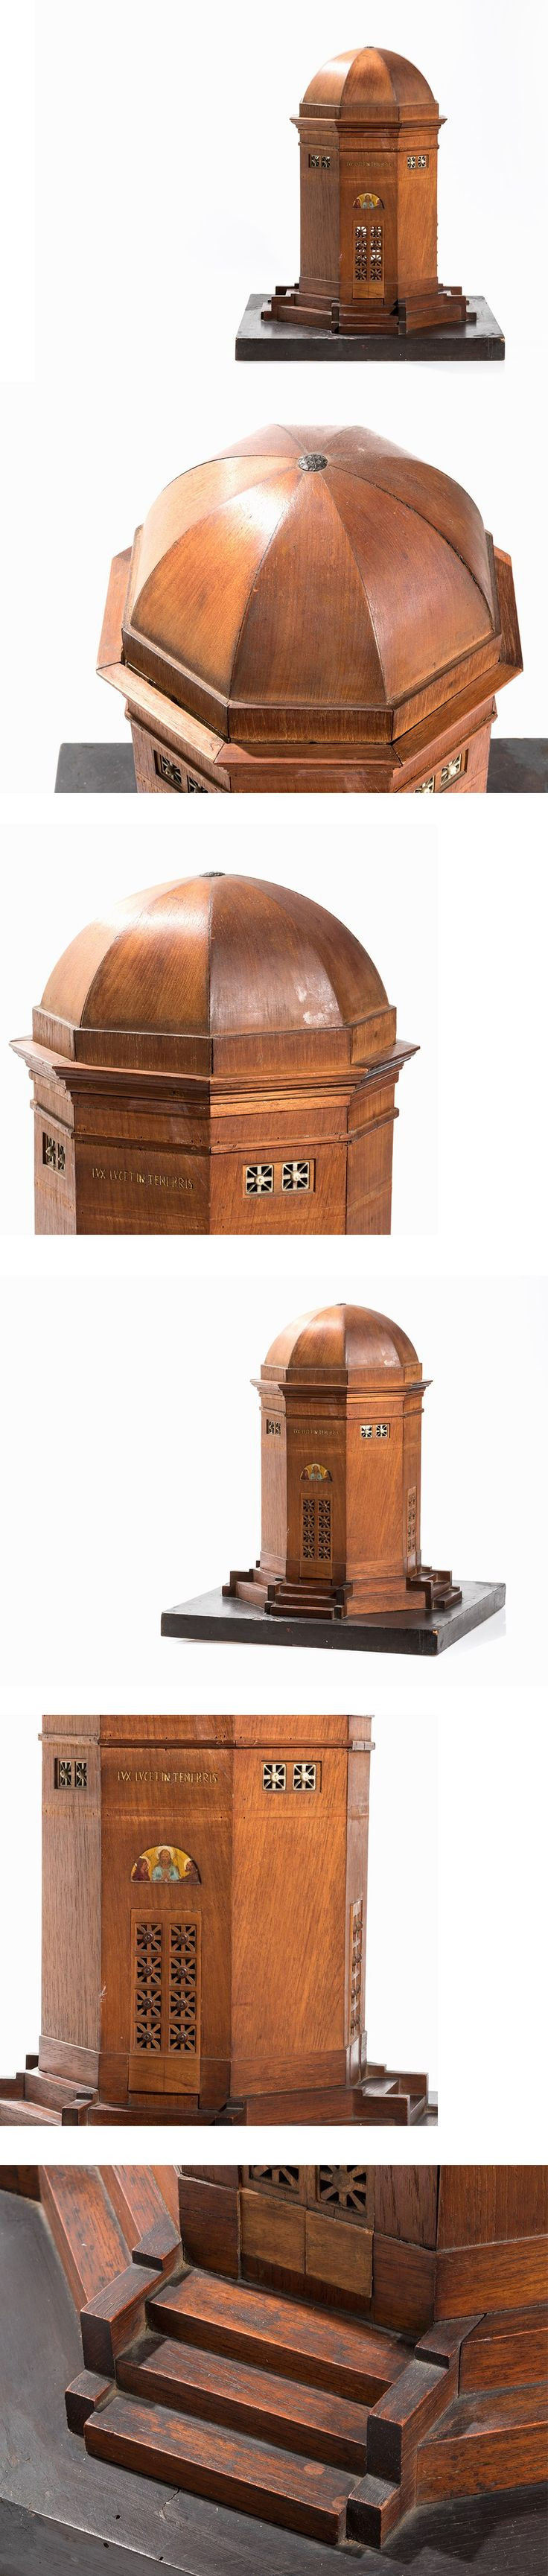 An Architectural Model of a Cupola, Wood, Ebonized Base, Mid-/Southern Europe, 19th C.